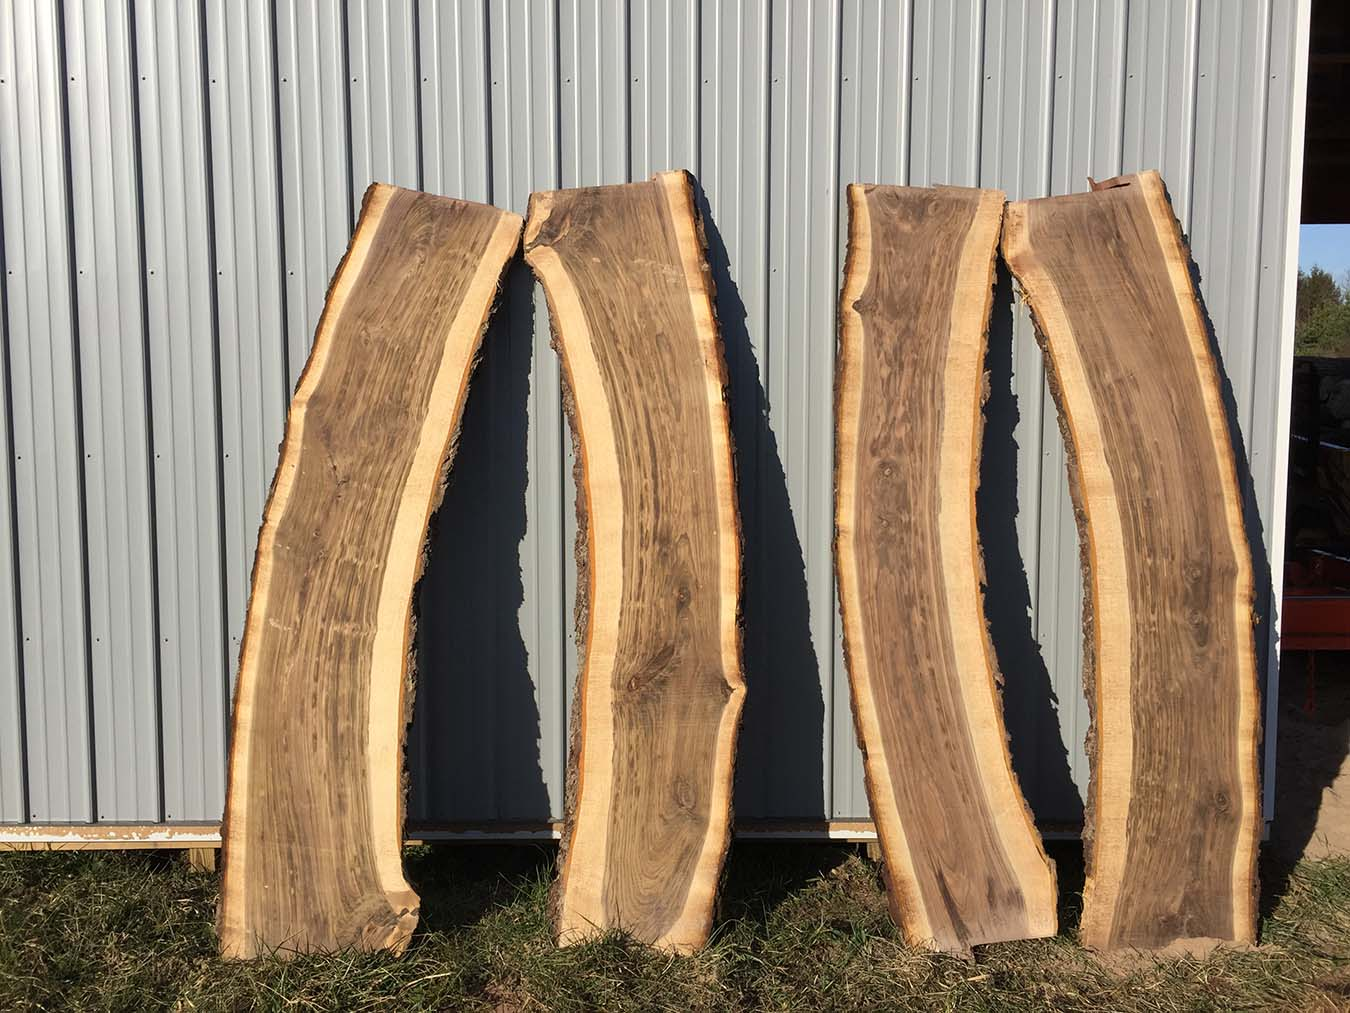 Live Edge Walnut Slabs Black Walnut Wood Slabs For Sale